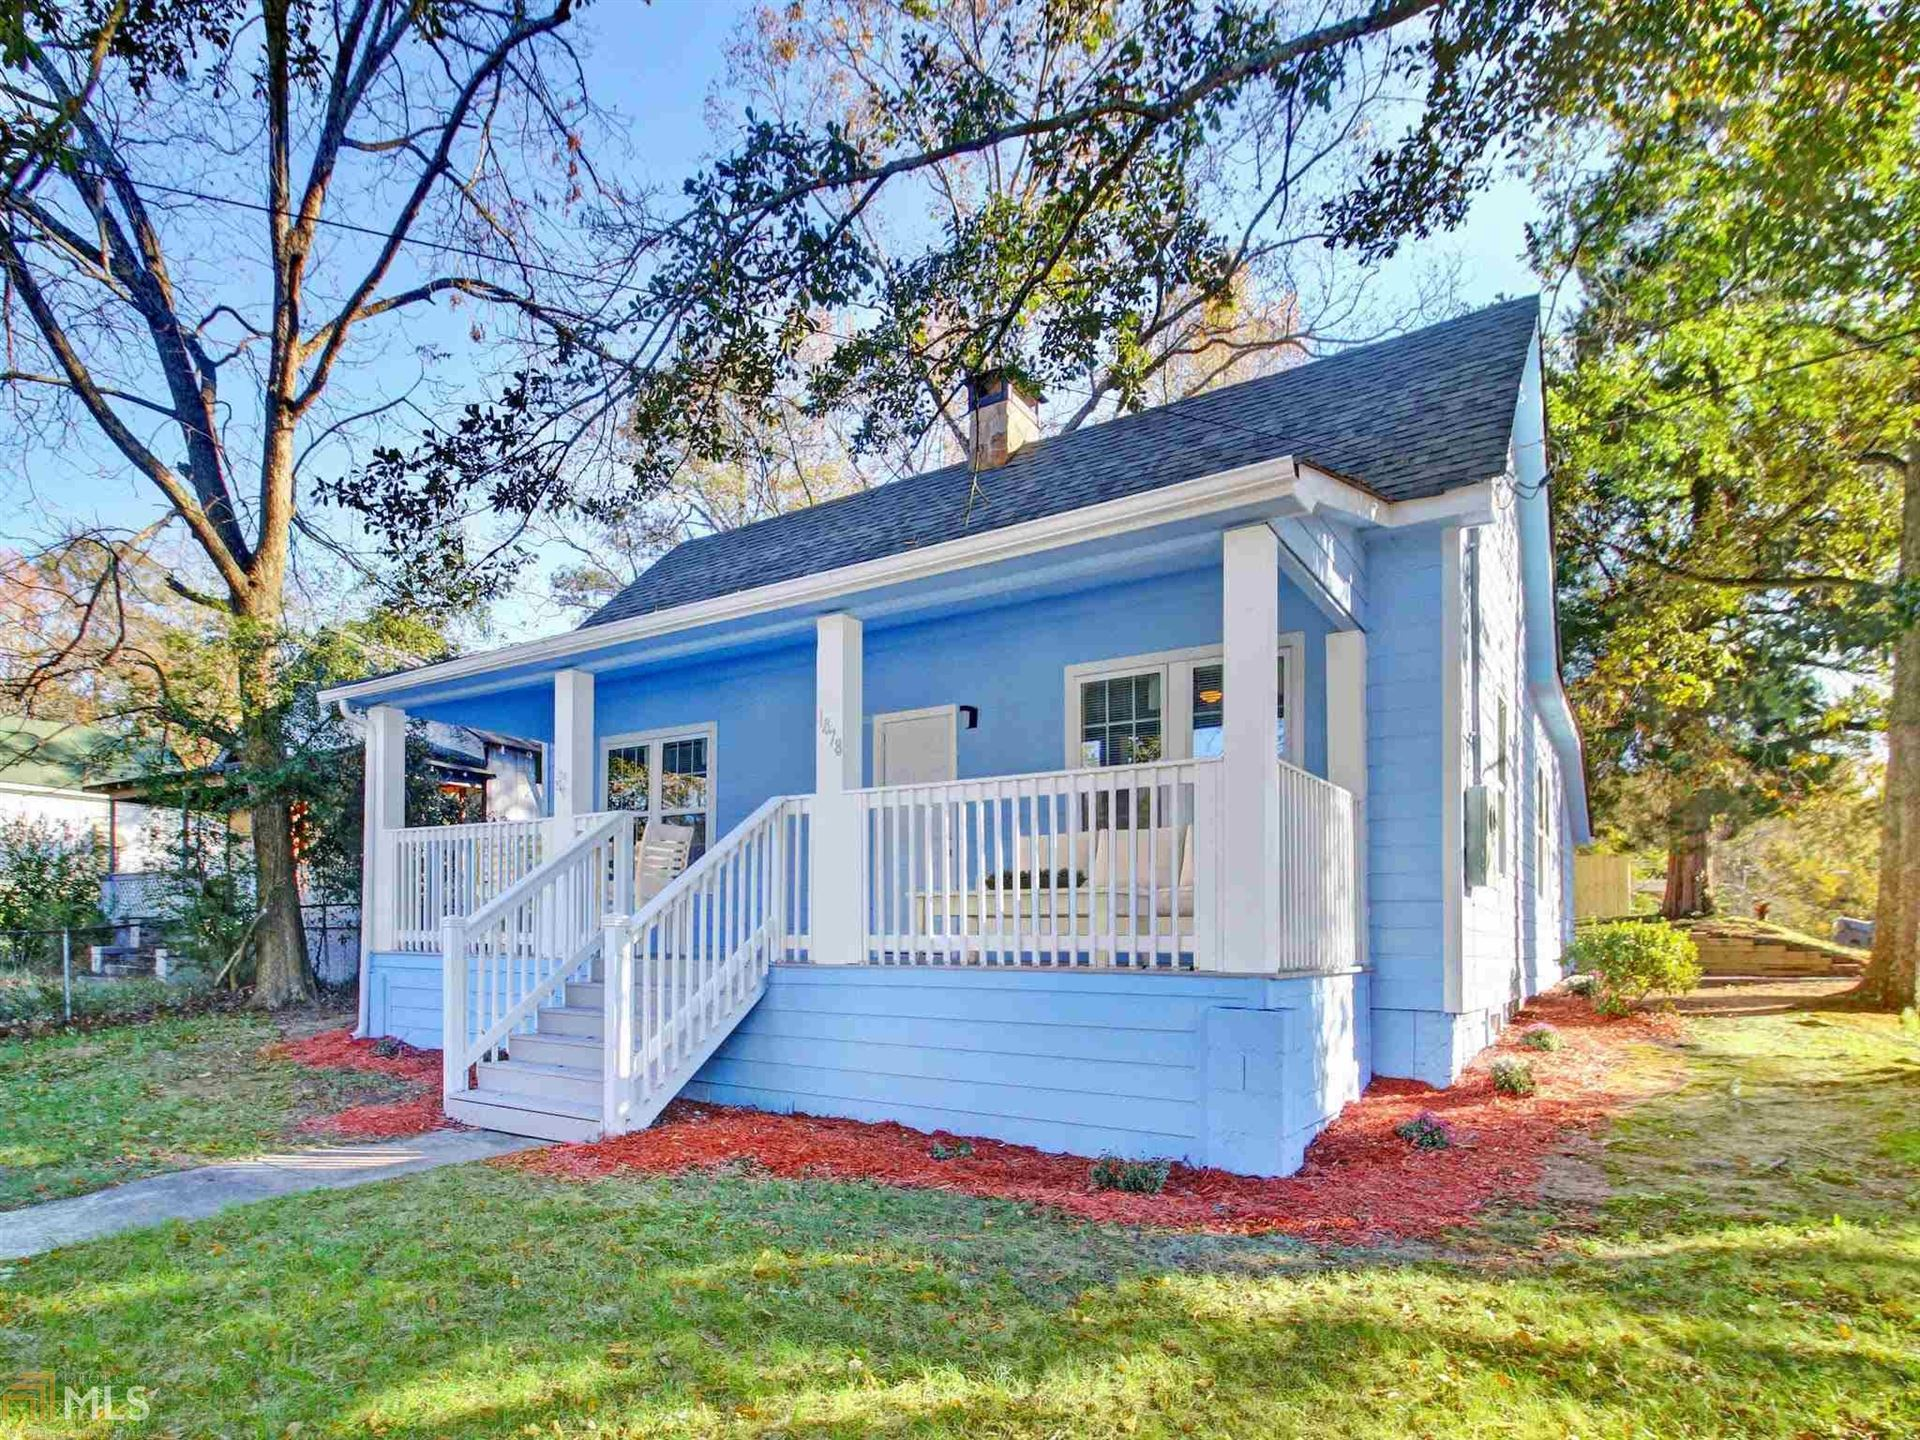 1878 Williams Ave, East Point, GA 30344 - MLS#: 8891827